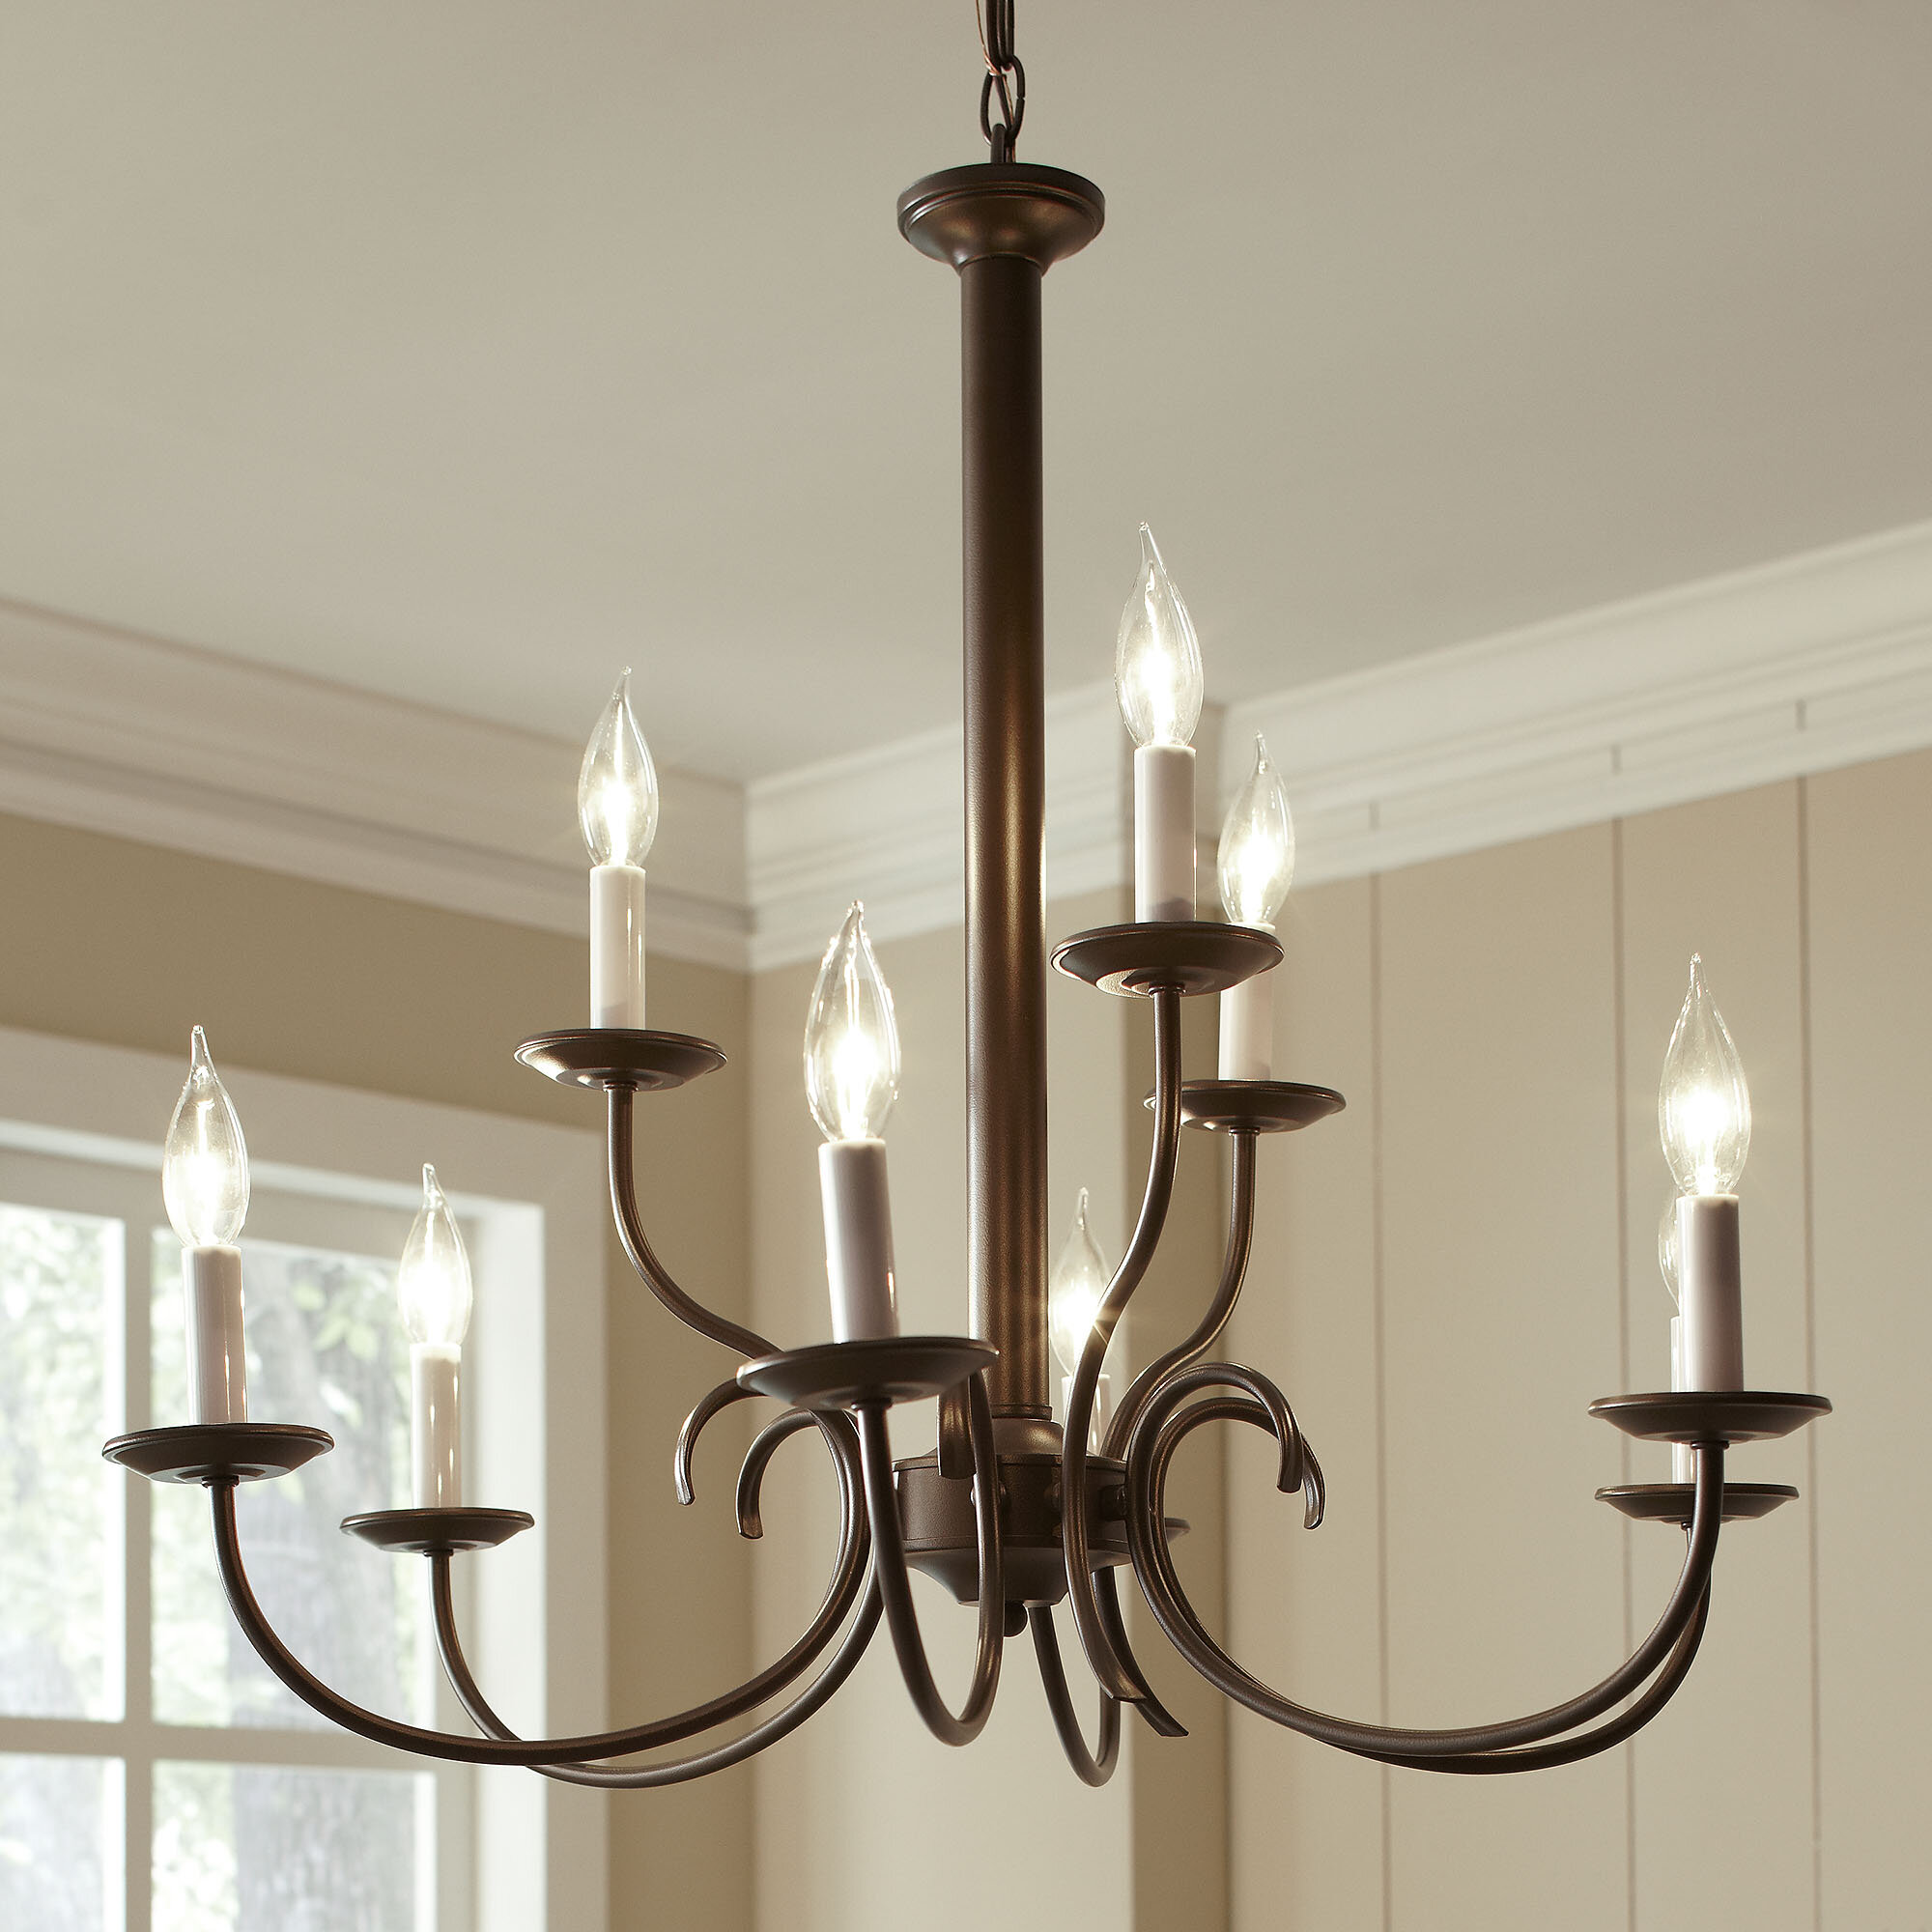 Trevorton 9 Light Candle Style Chandelier & Reviews